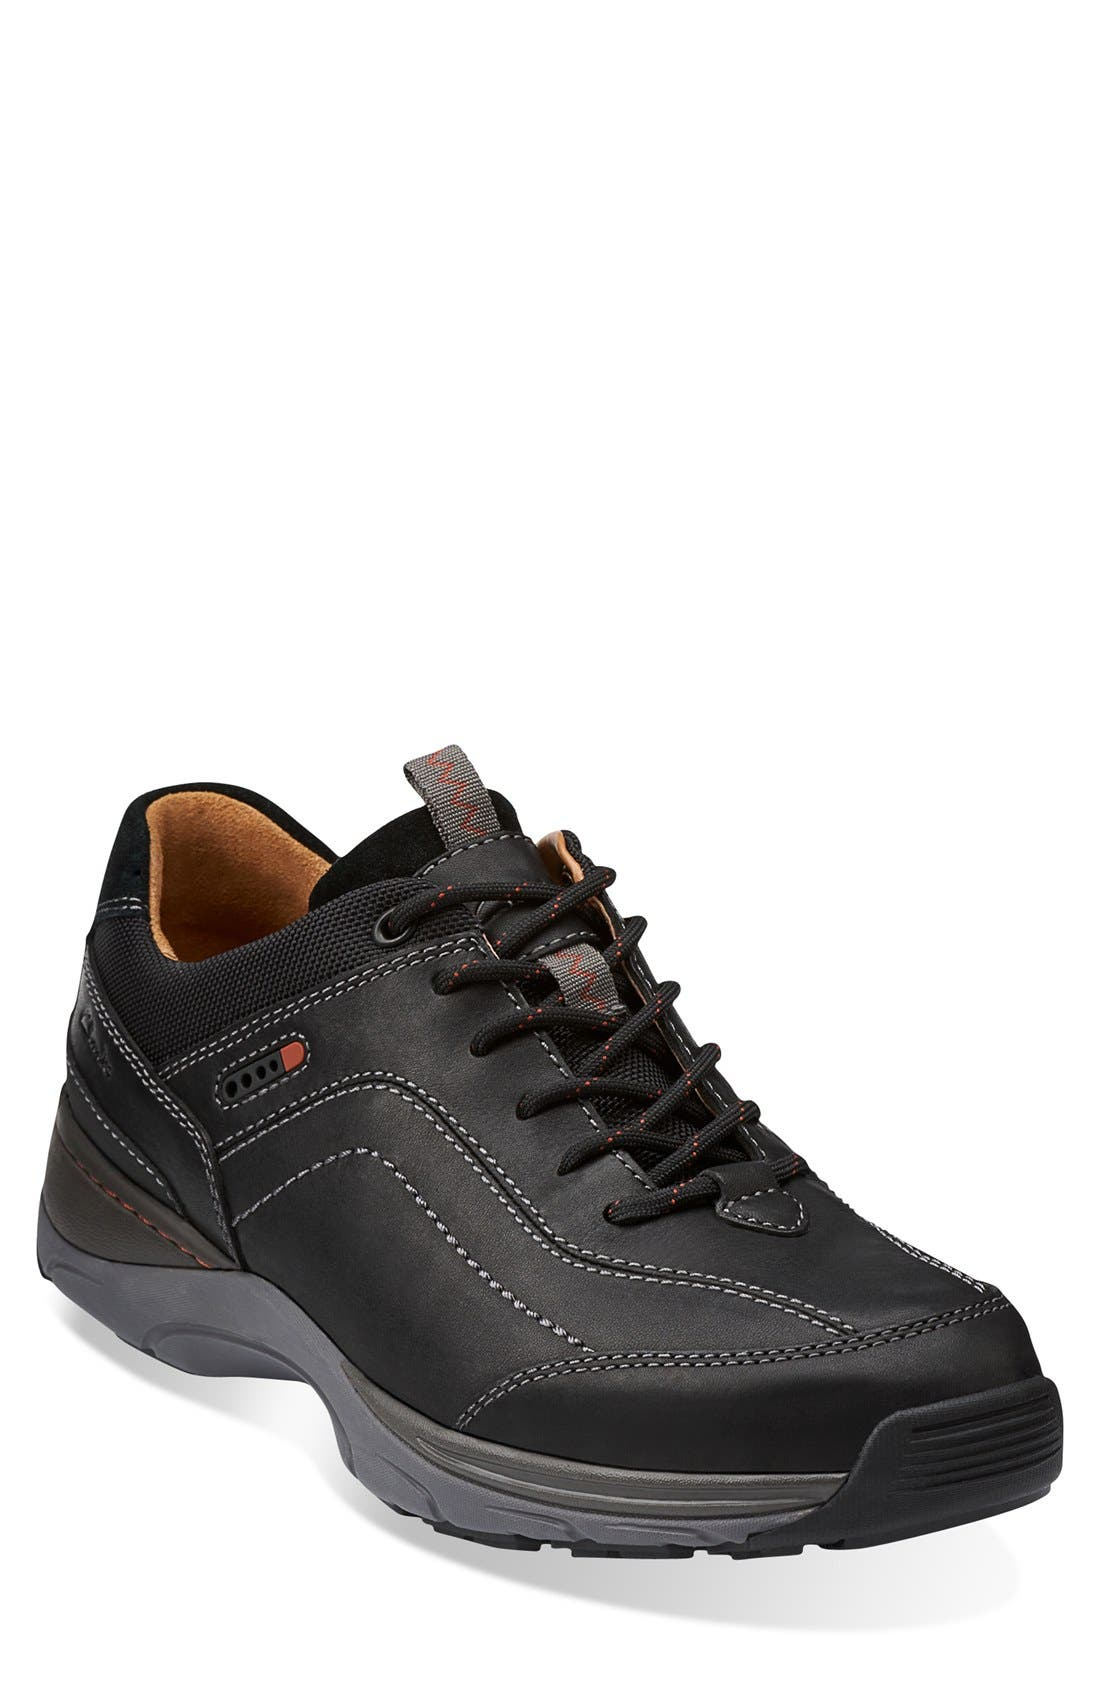 Clarks<sup>®</sup> 'Skyward Vibe' Sneaker,                             Main thumbnail 1, color,                             003